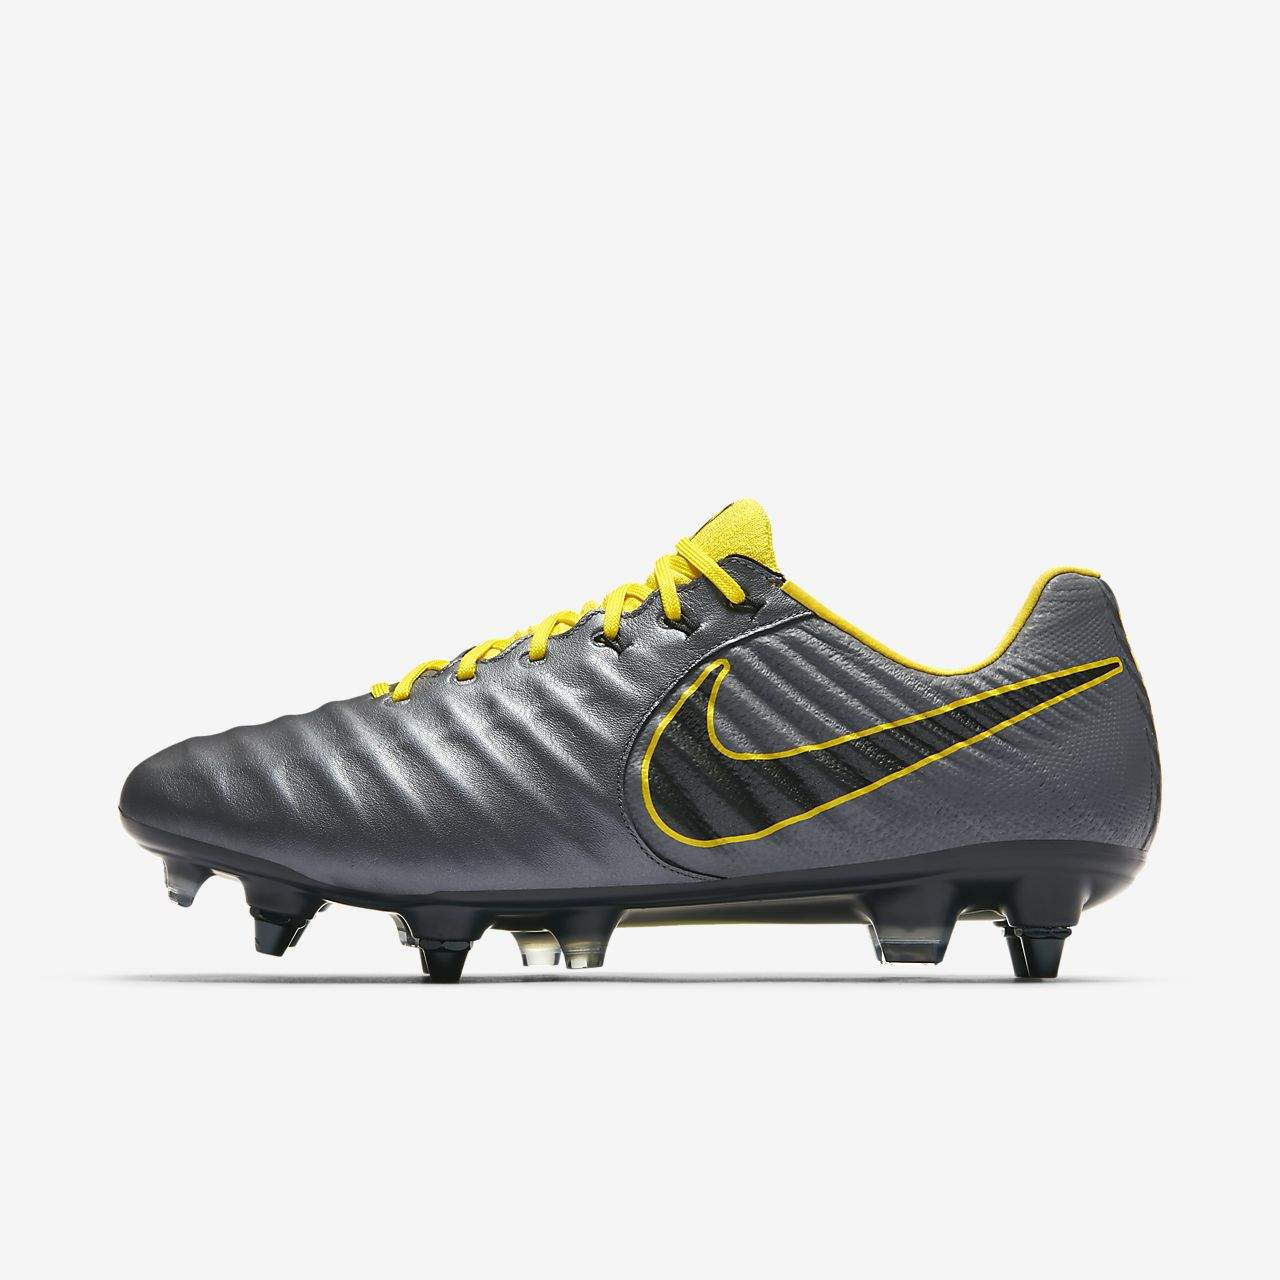 1db2c0c25c0b Nike Tiempo Legend VII Elite SG-Pro Anti-Clog Soft-Ground Football ...